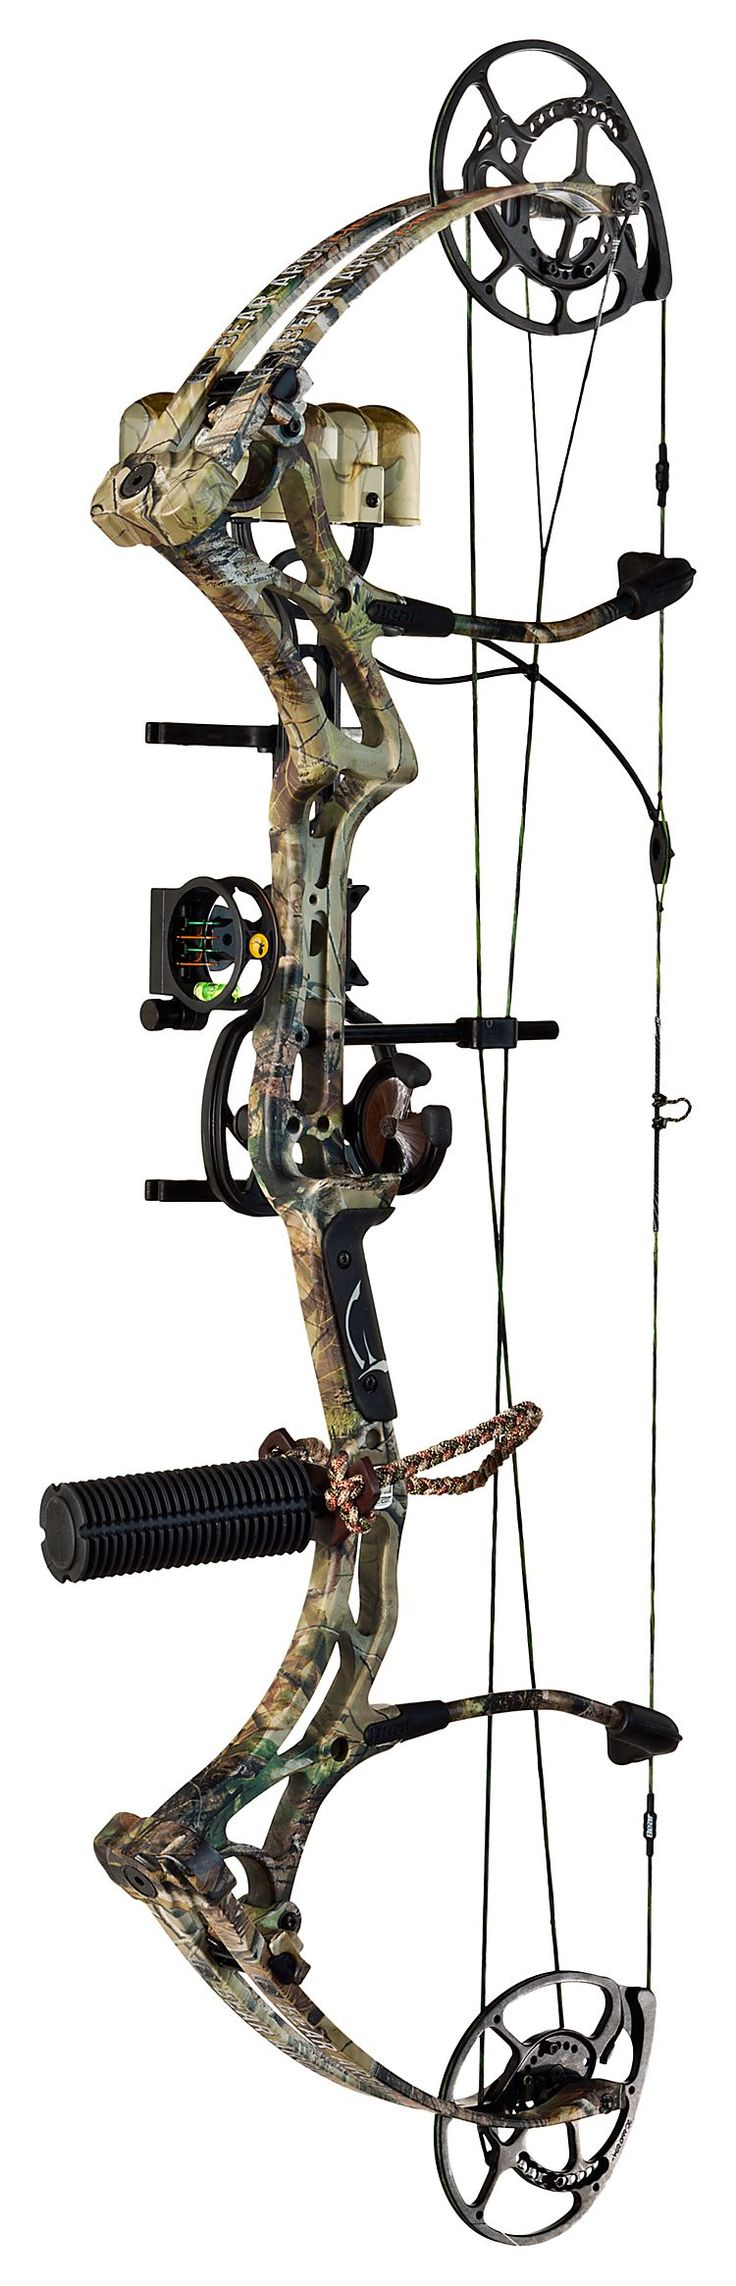 Bear® Archery Method RTH (Ready To Hunt) Compound Bow Packages | Bass Pro Shops